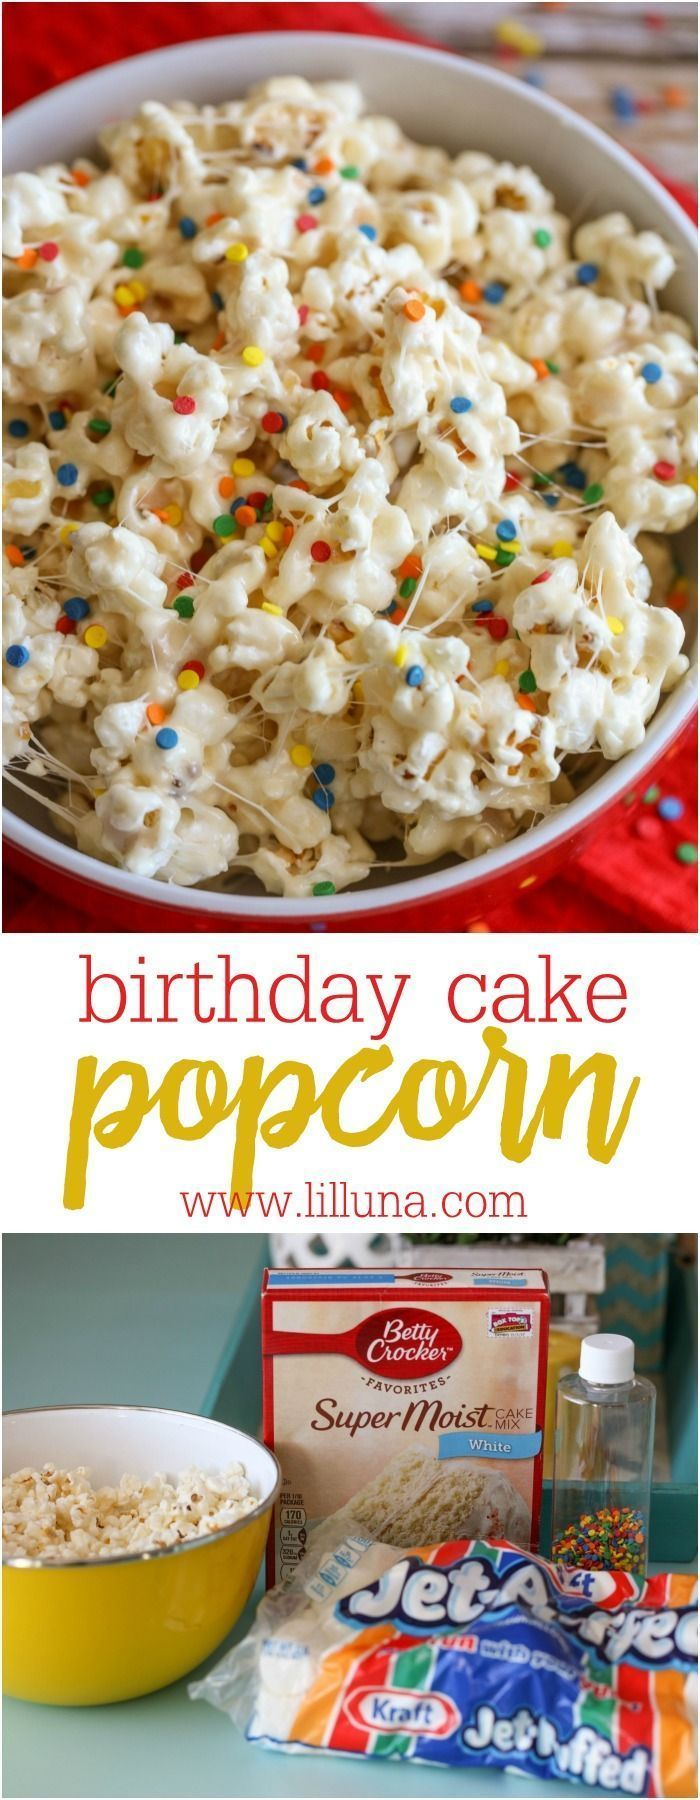 This Birthday Cake Popcorn - this sweet and salty gooey treat has a delicious cake batter flavor that is SO addicting! Are you looking for original ideas for a gift for a birthday and you can't make a worthy choice? Try this list of best gift ideas which was created by a bunch of geeks who partake in way too much online window shopping.  birthday gifts for boyfriend | birthday gifts for best friend | birthday gifts for best friend diy | Birthday Gifts for teens